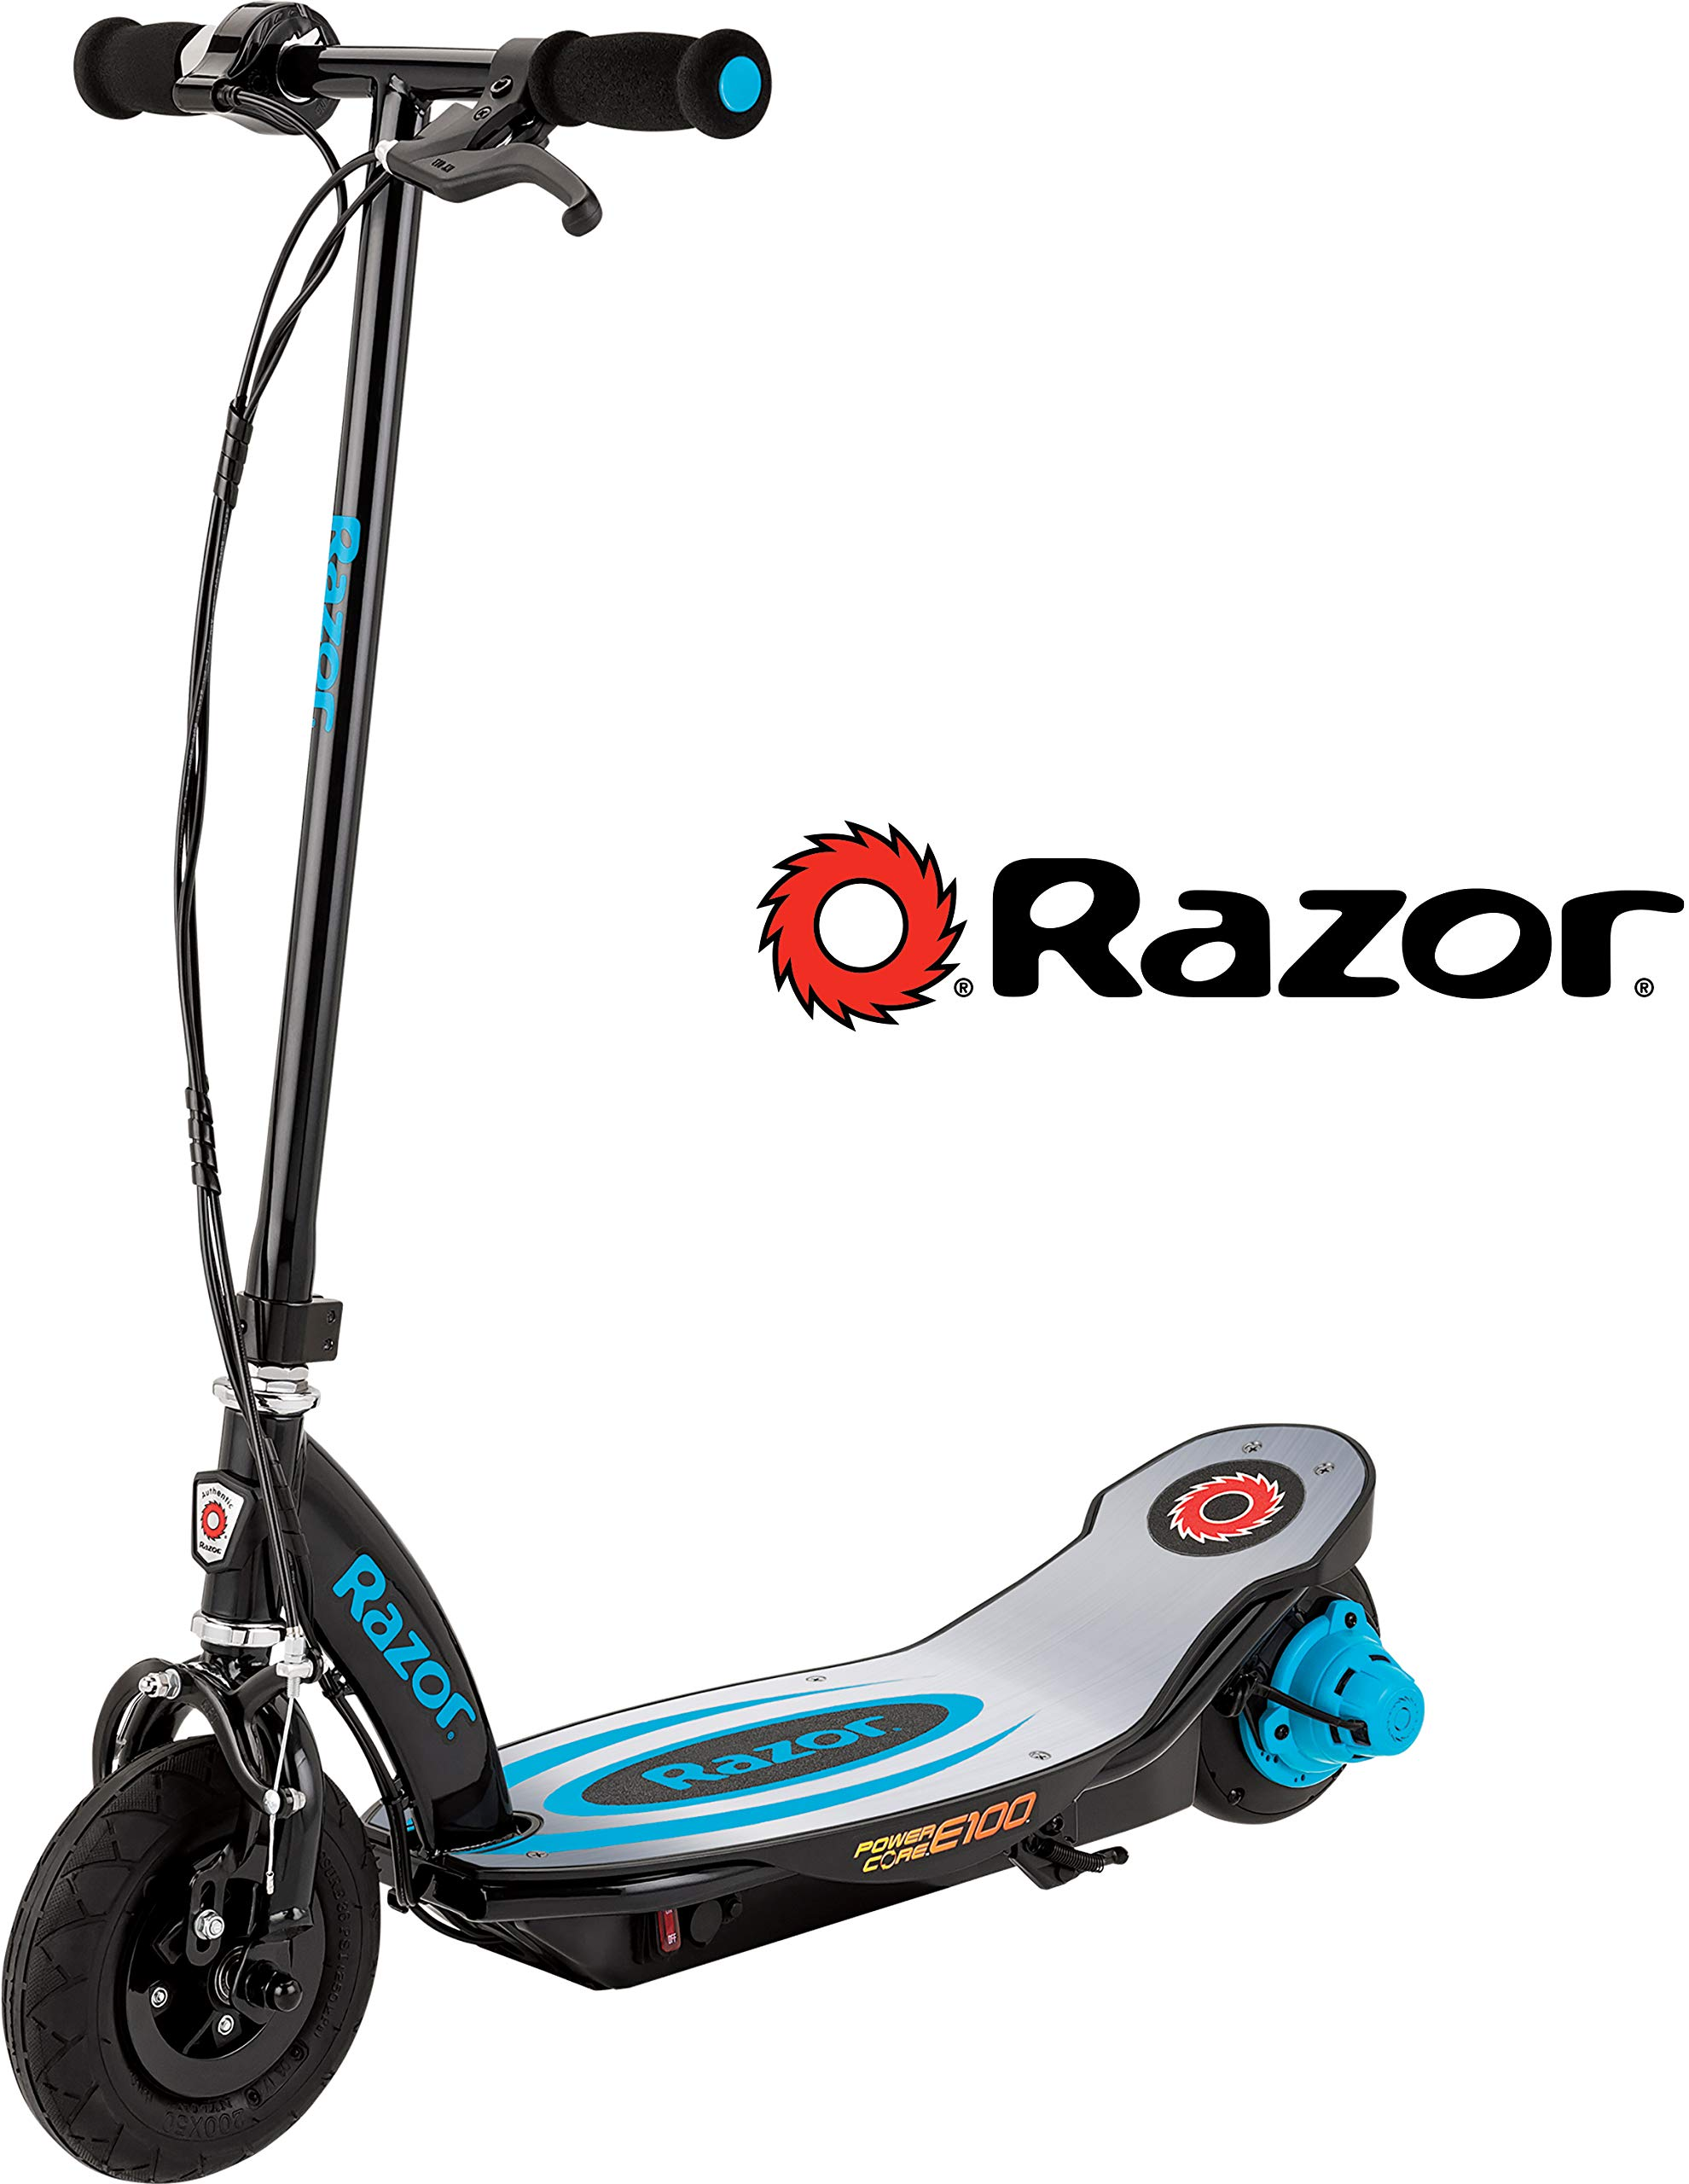 Razor Power Core E100 Electric Scooter with Aluminum Deck - Blue by Razor